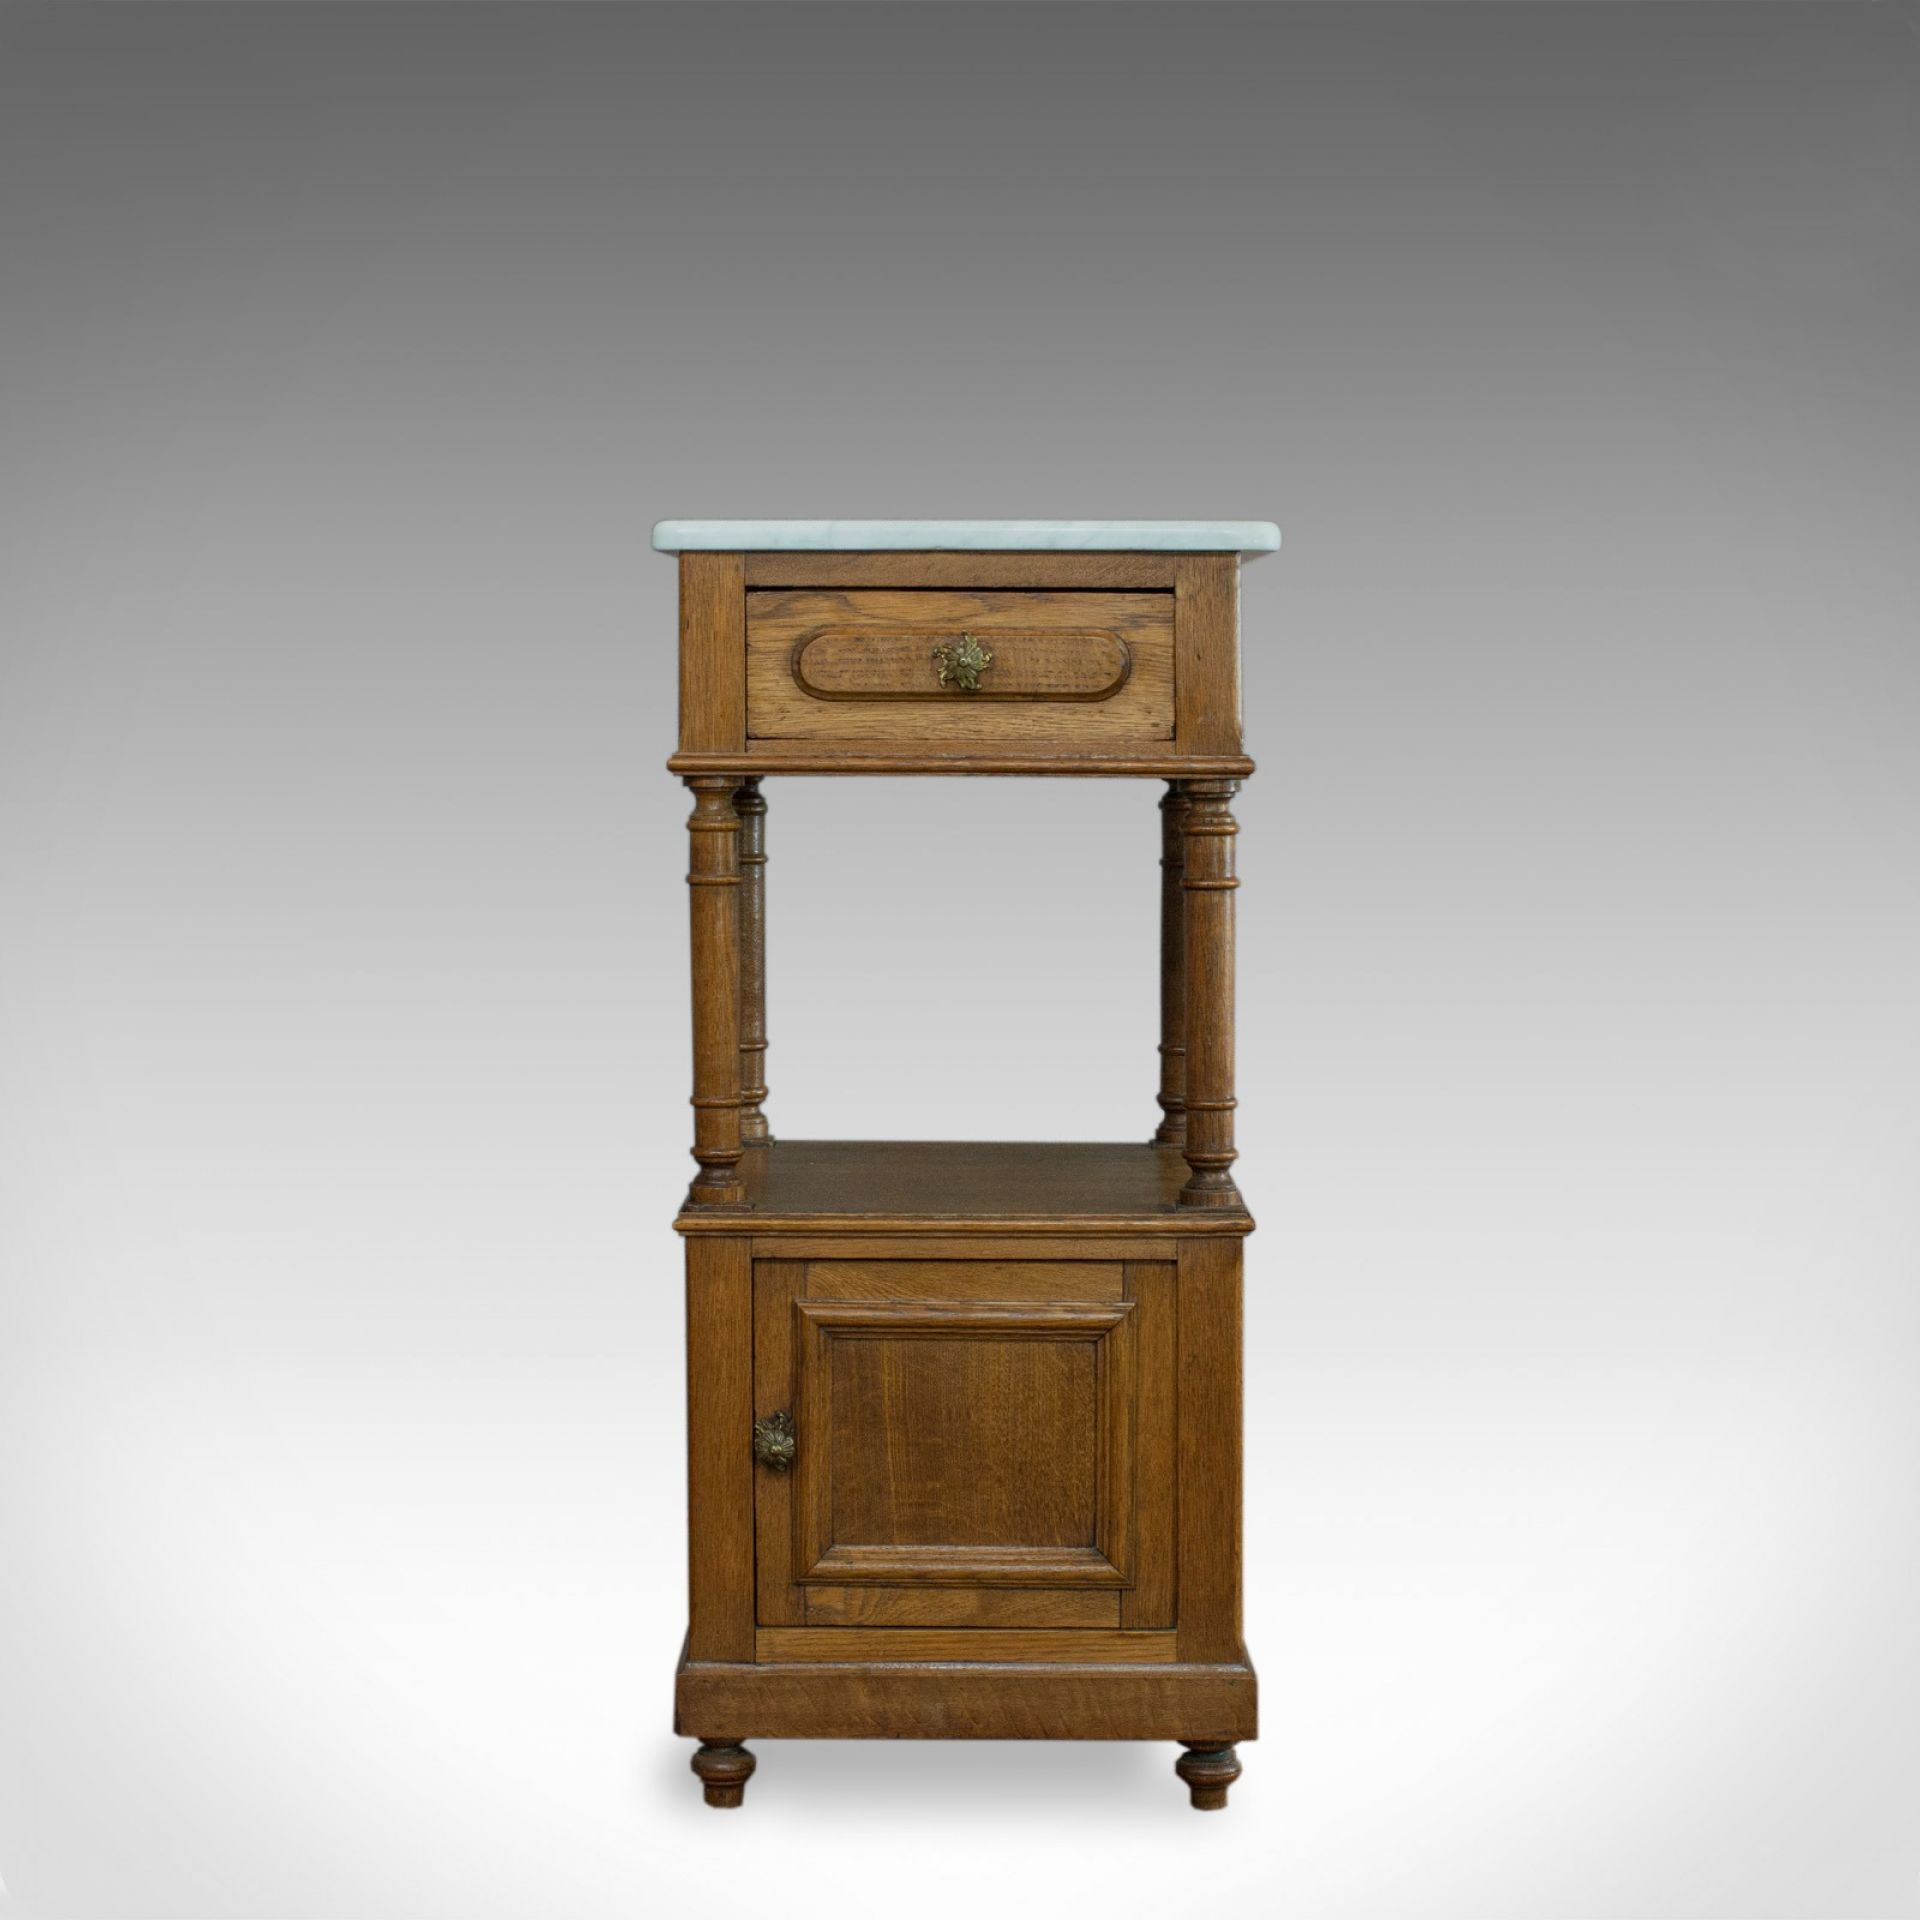 Antique Bedside Cabinet, French, Oak, Marble, Lamp, Nightstand, Circa 1930